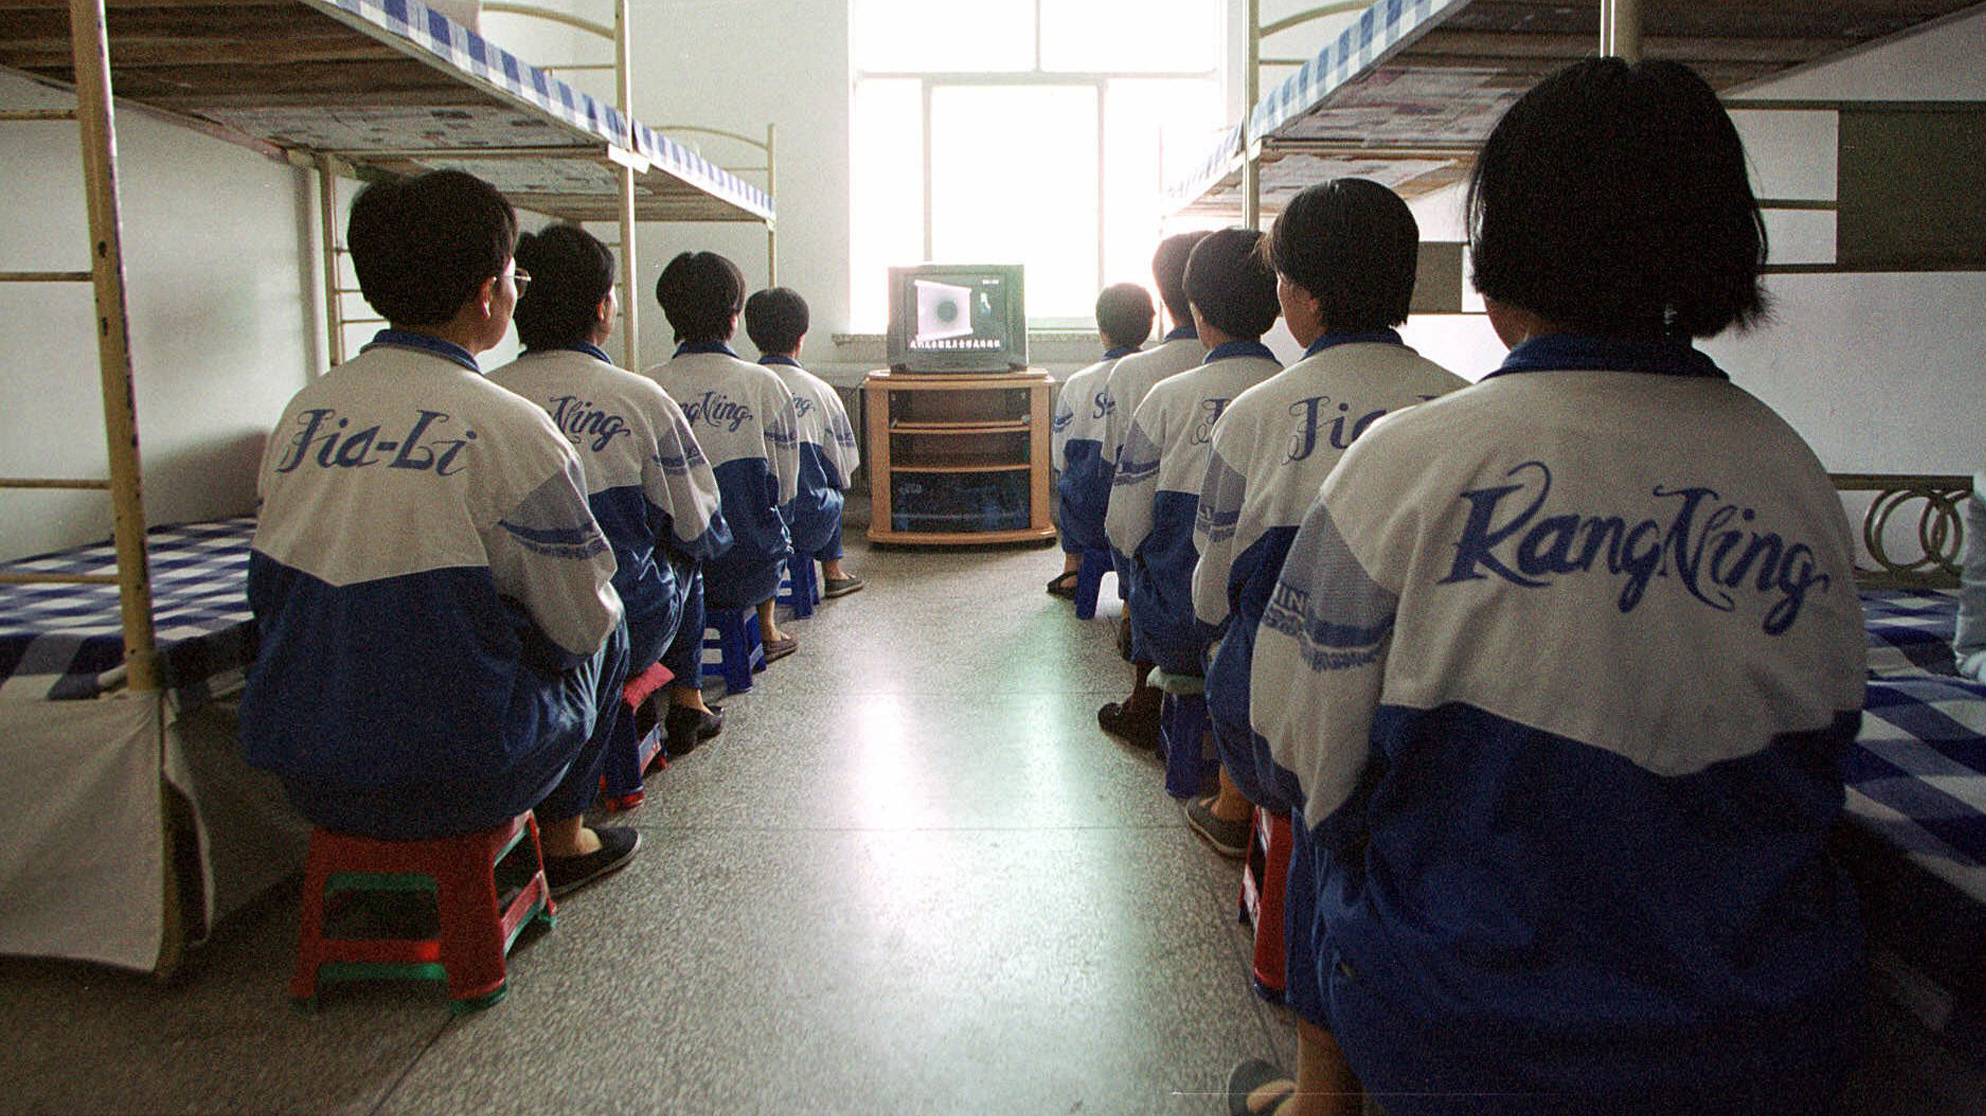 China Ends One Notorious Form Of Detention, But Keeps Others